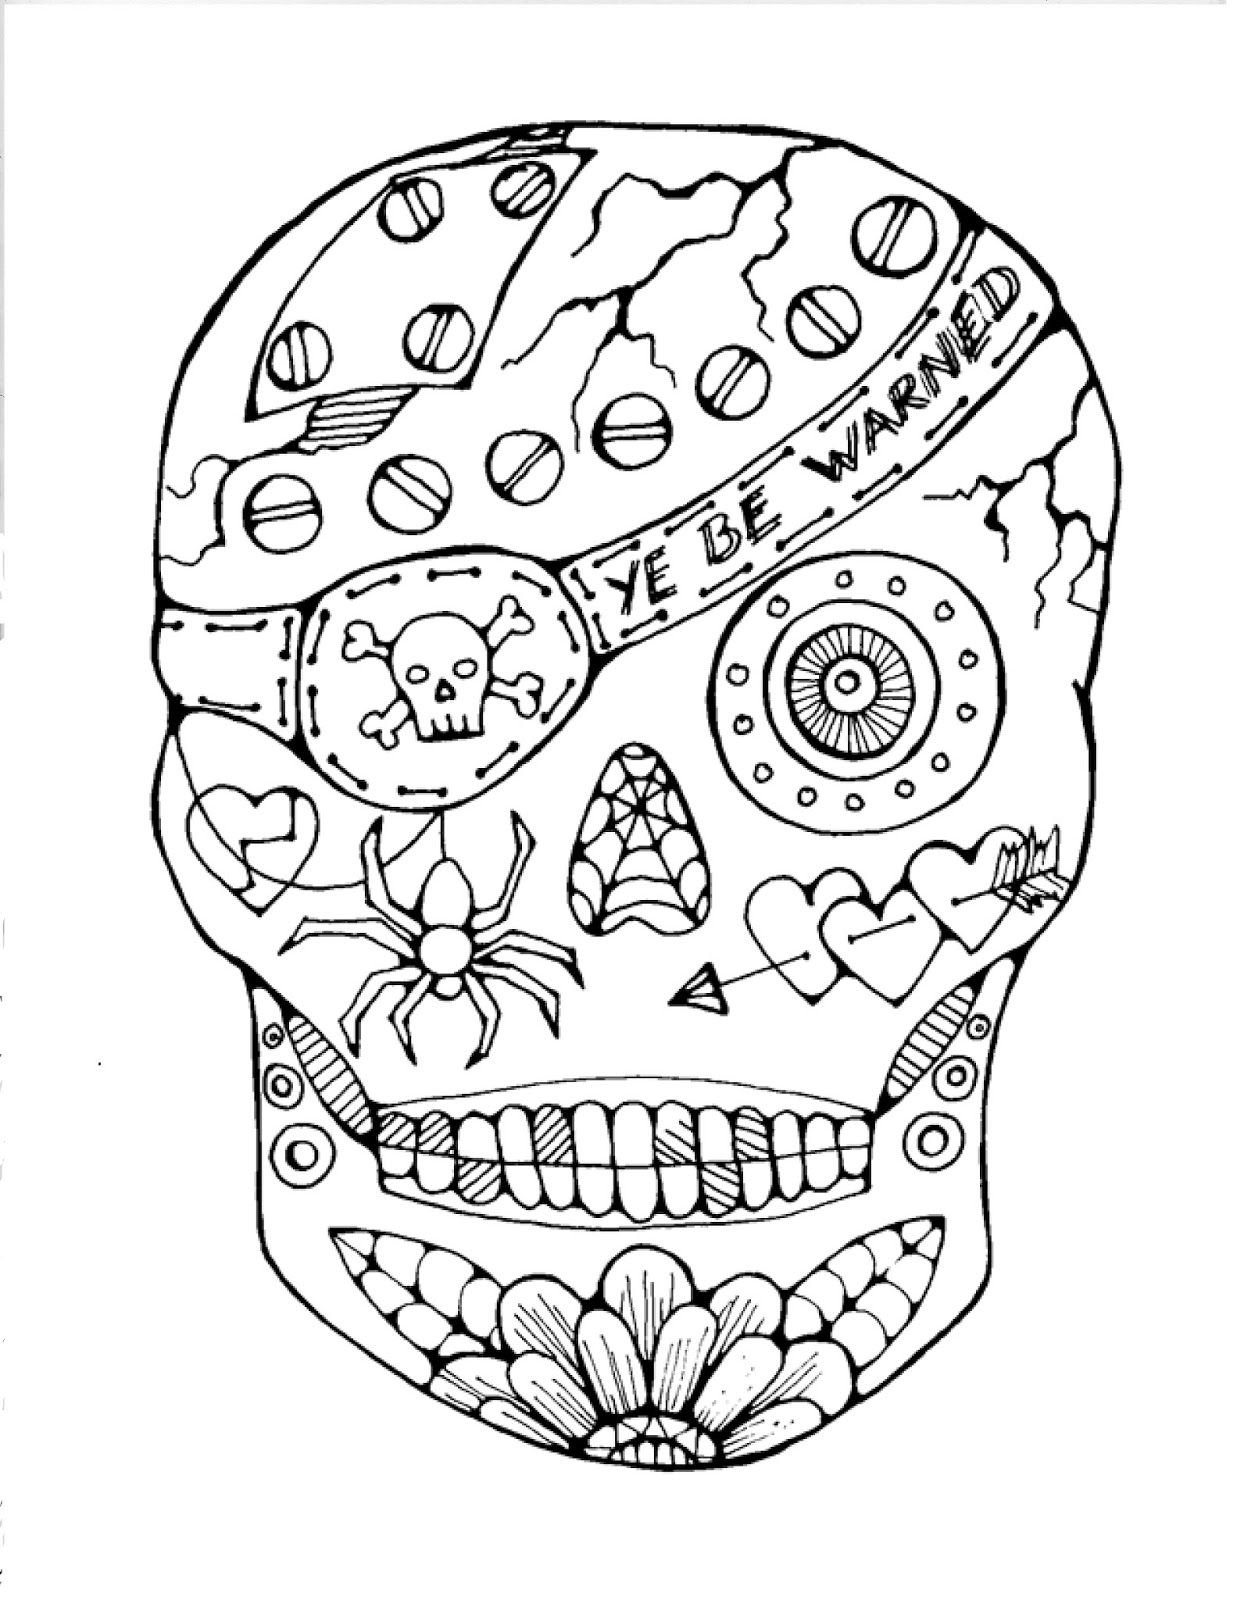 day of the dead coloring pages free sugar skull coloring pages best coloring pages for kids dead coloring free of the pages day